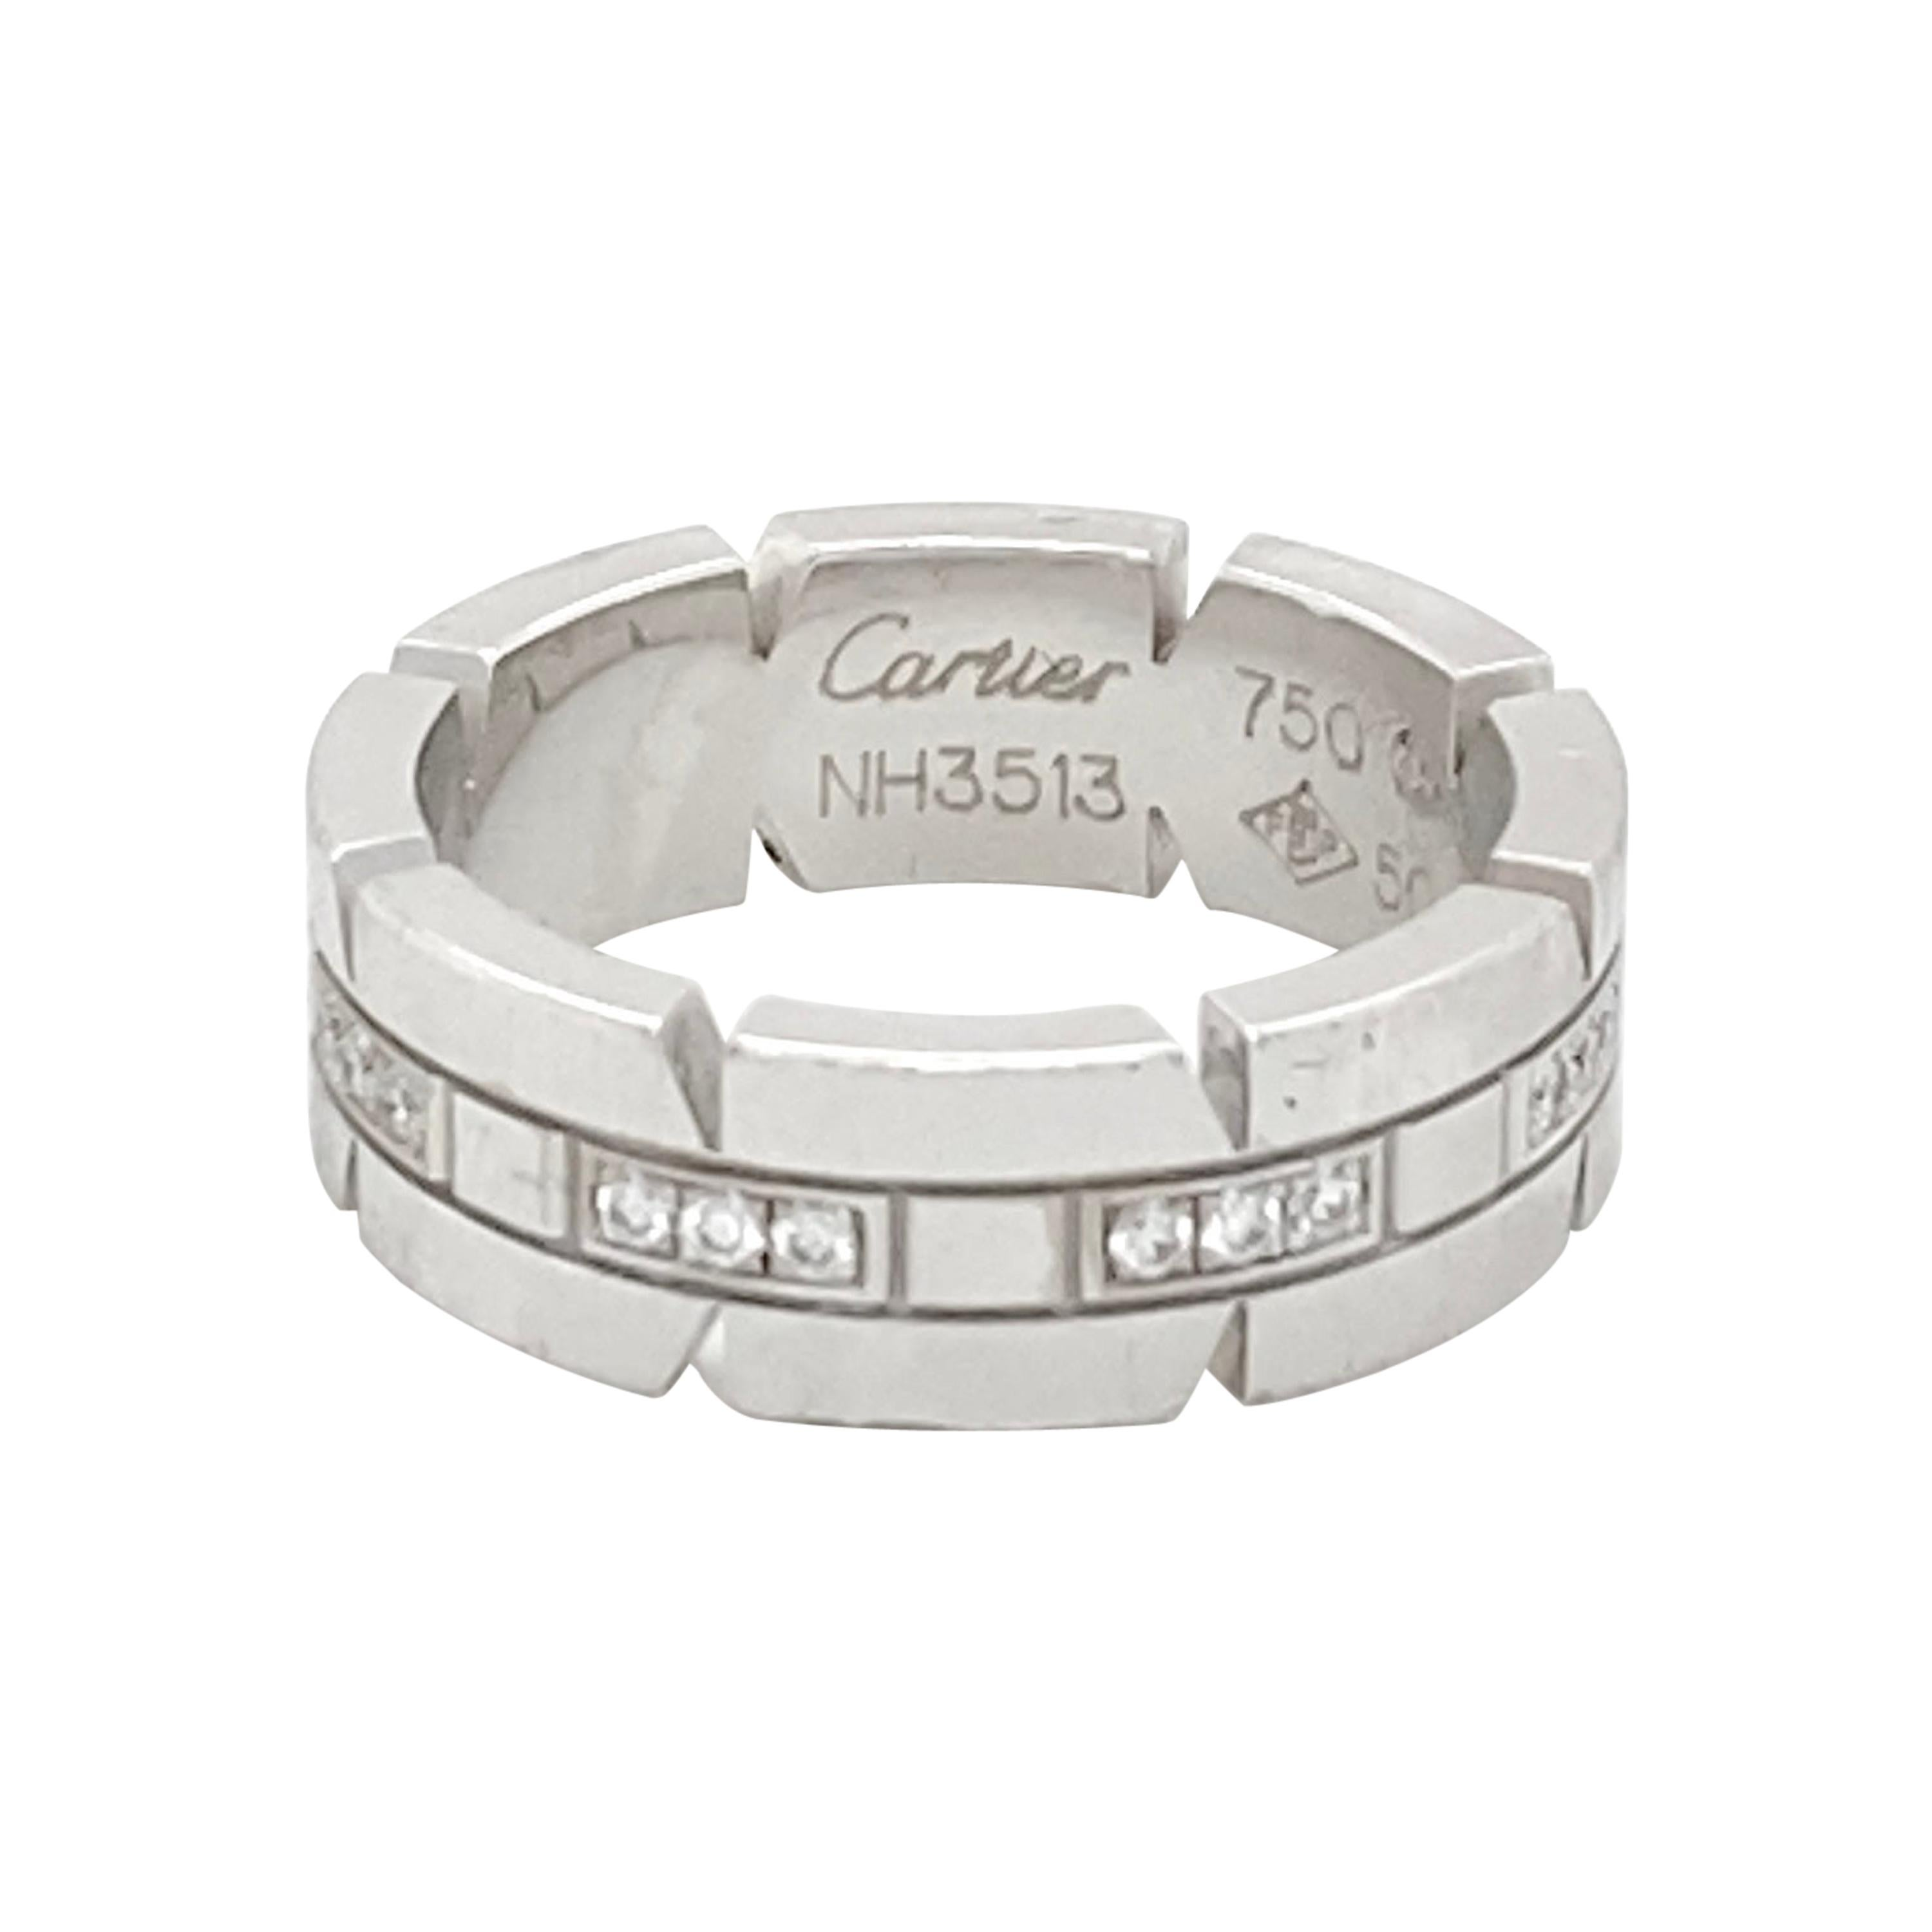 Cartier Gold and Diamond Ring Size 5.5